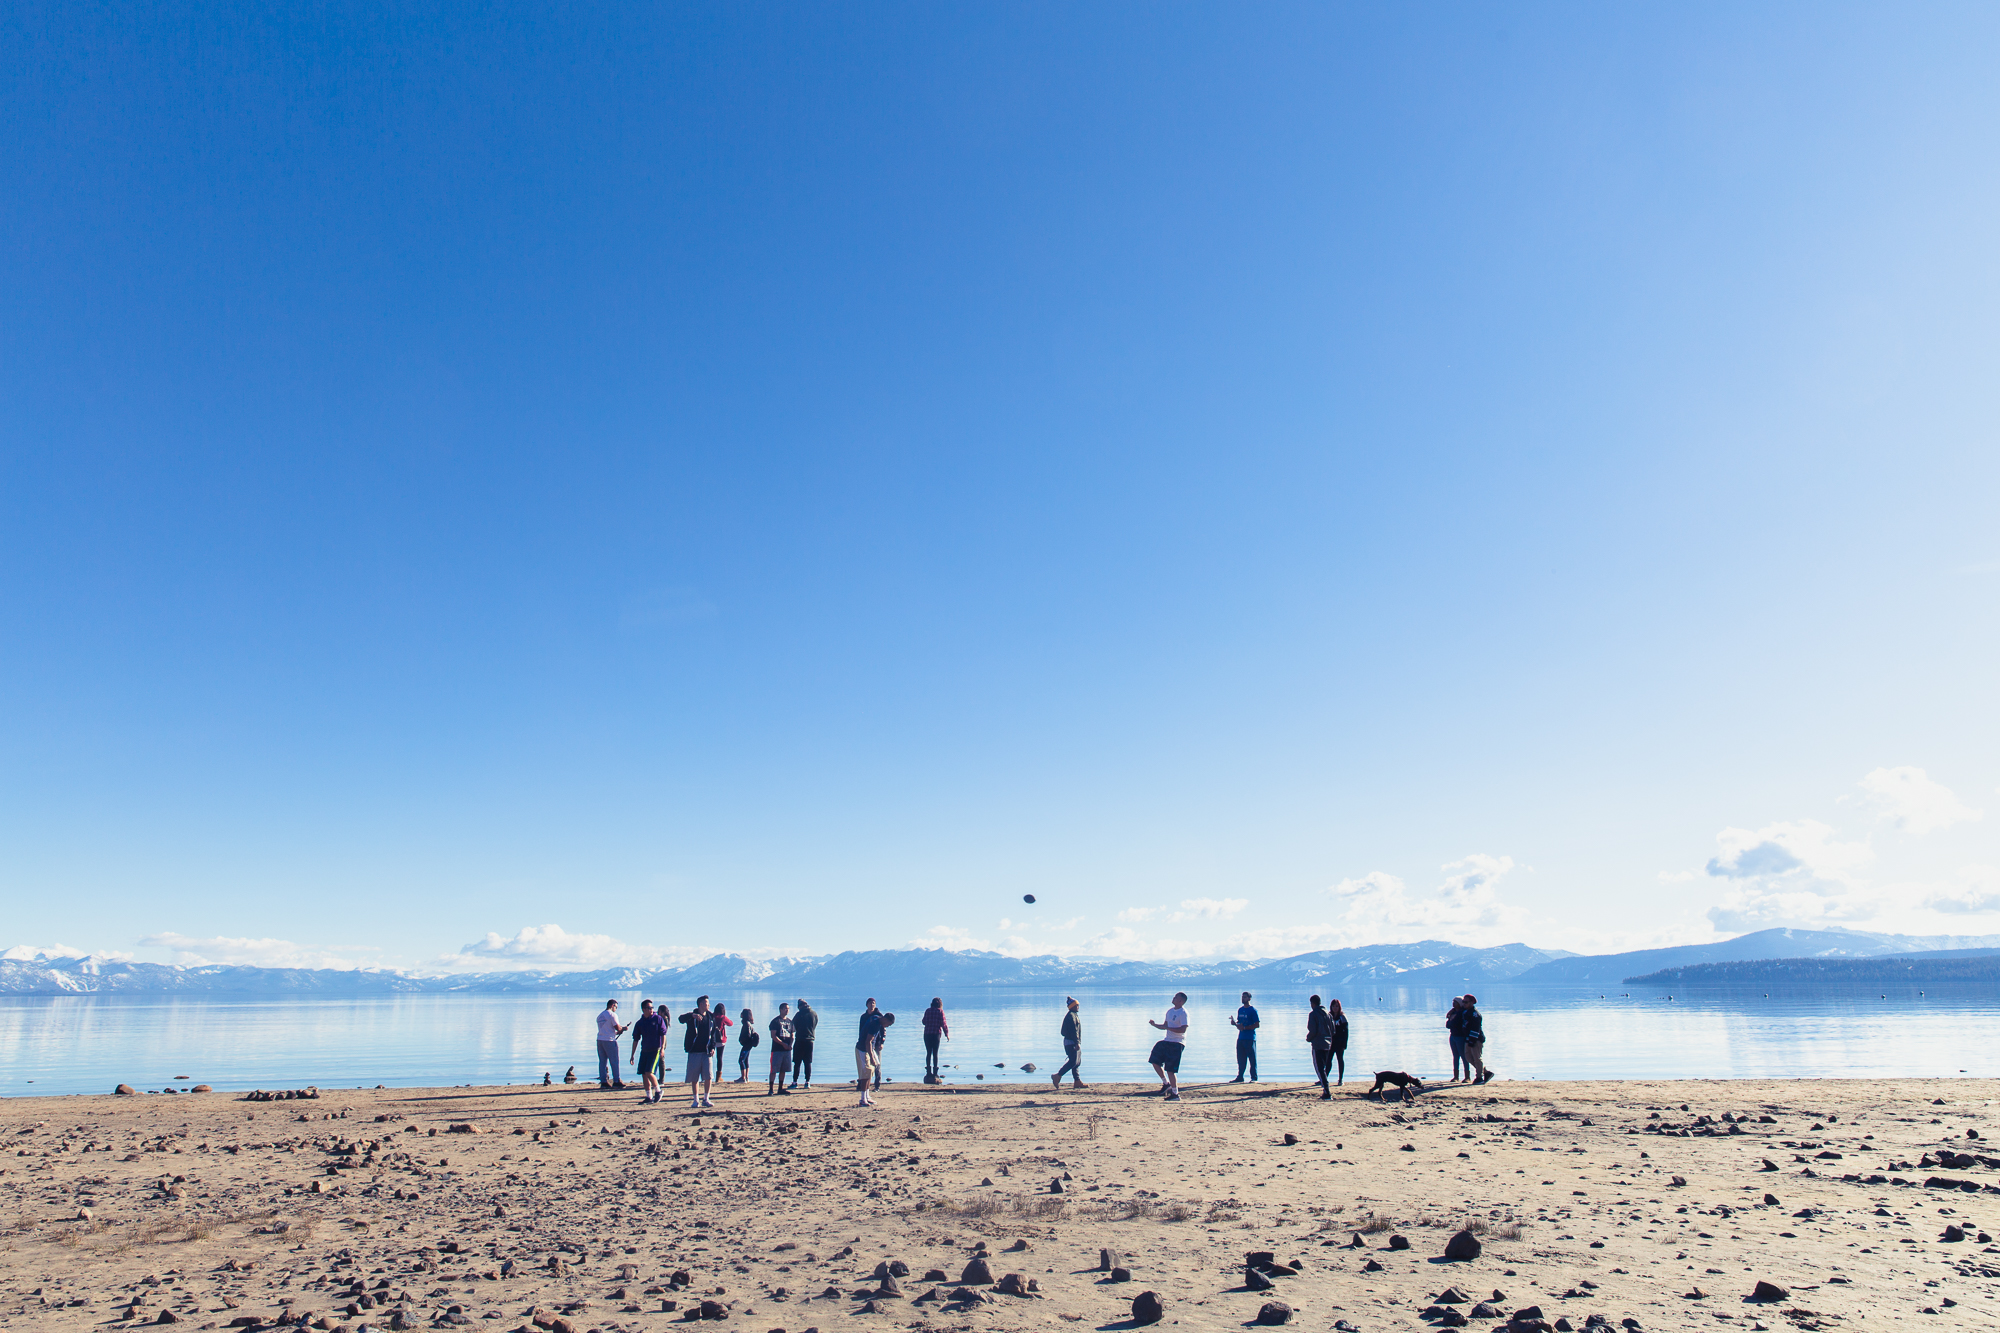 crew-and-tahoe-7.jpg